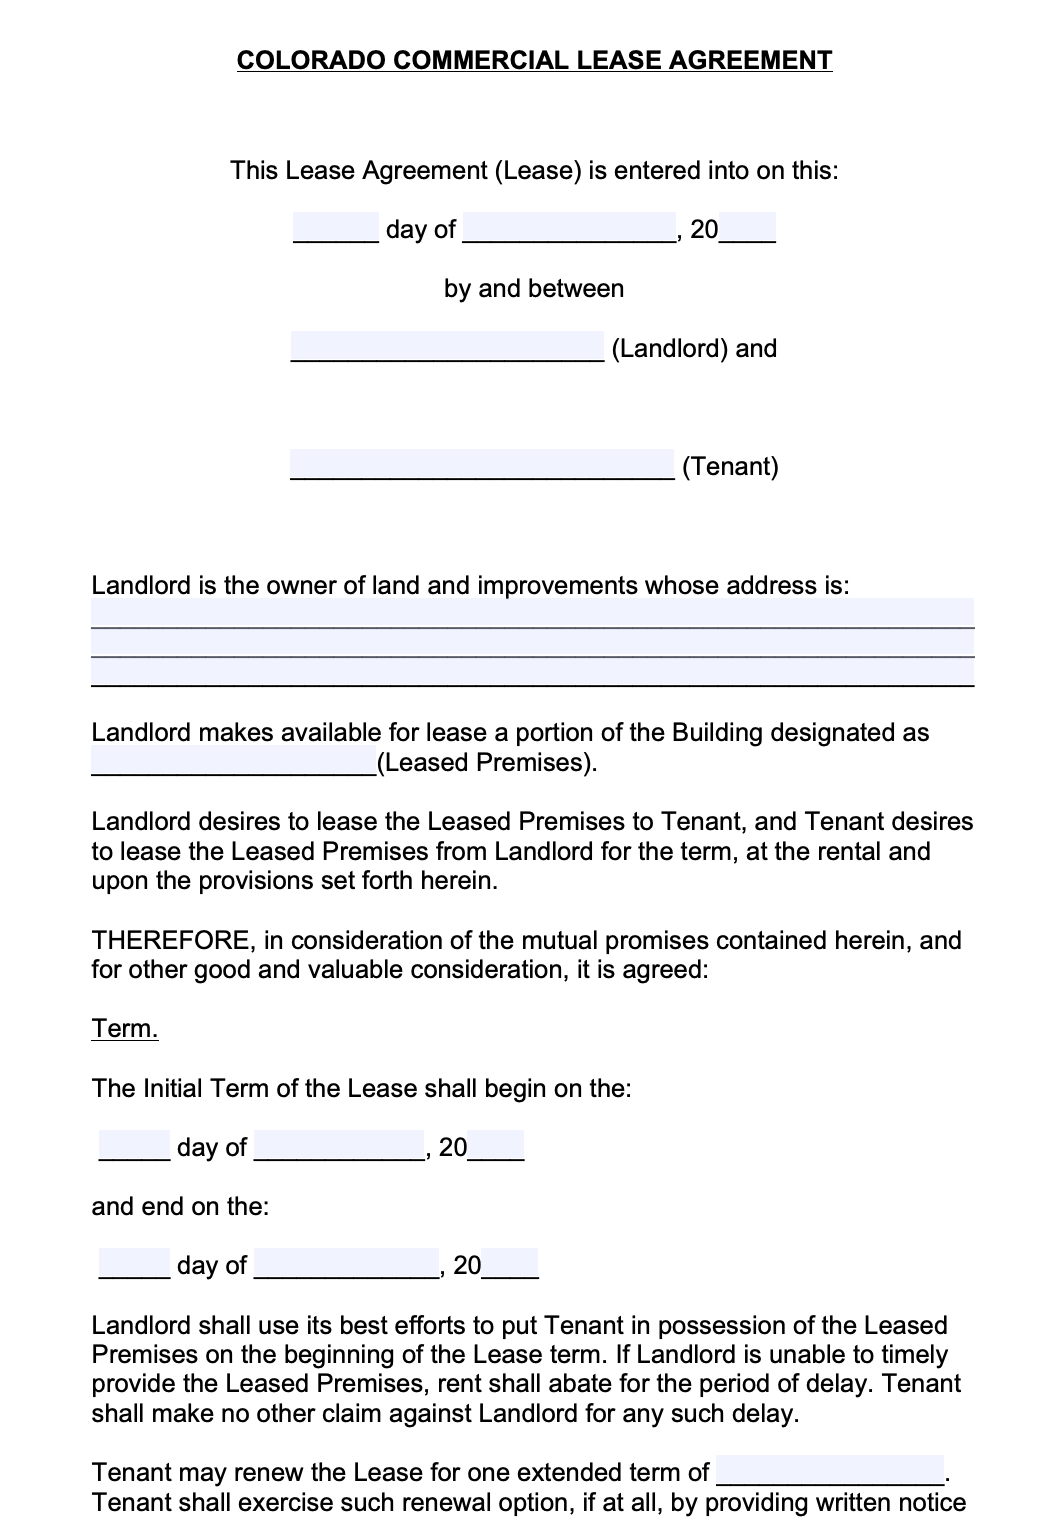 Free Colorado Commercial Lease Agreement Template Pdf